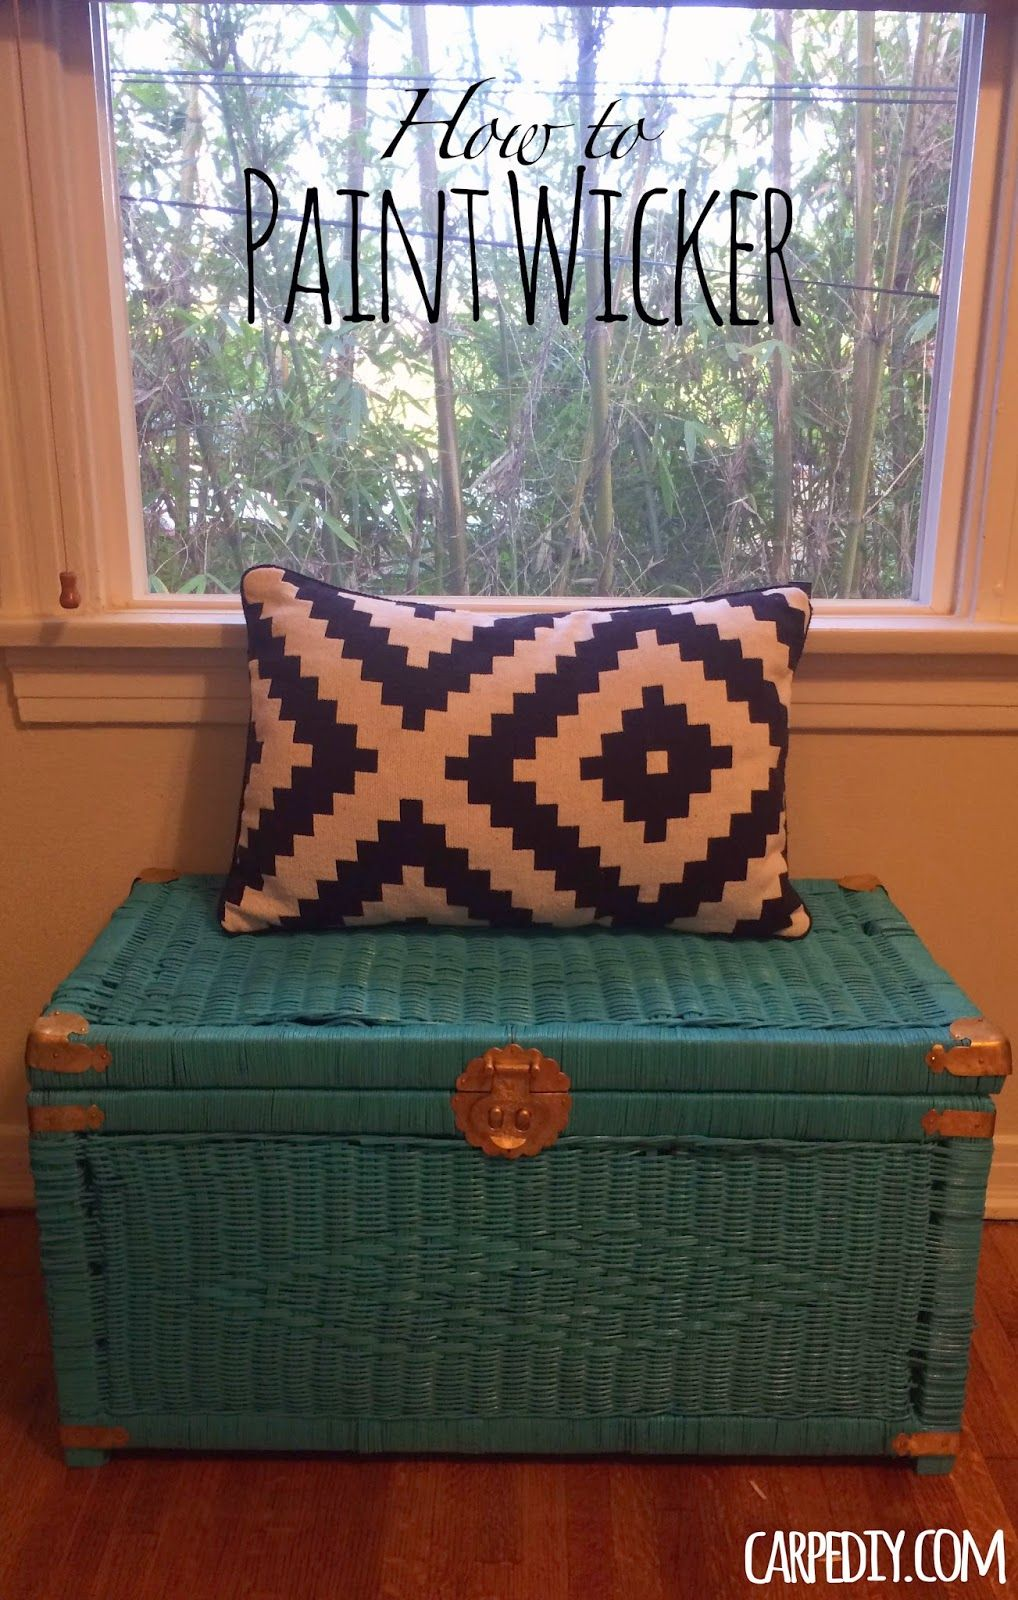 Carpe Diy How To Paint Wicker Painted Wicker Painting